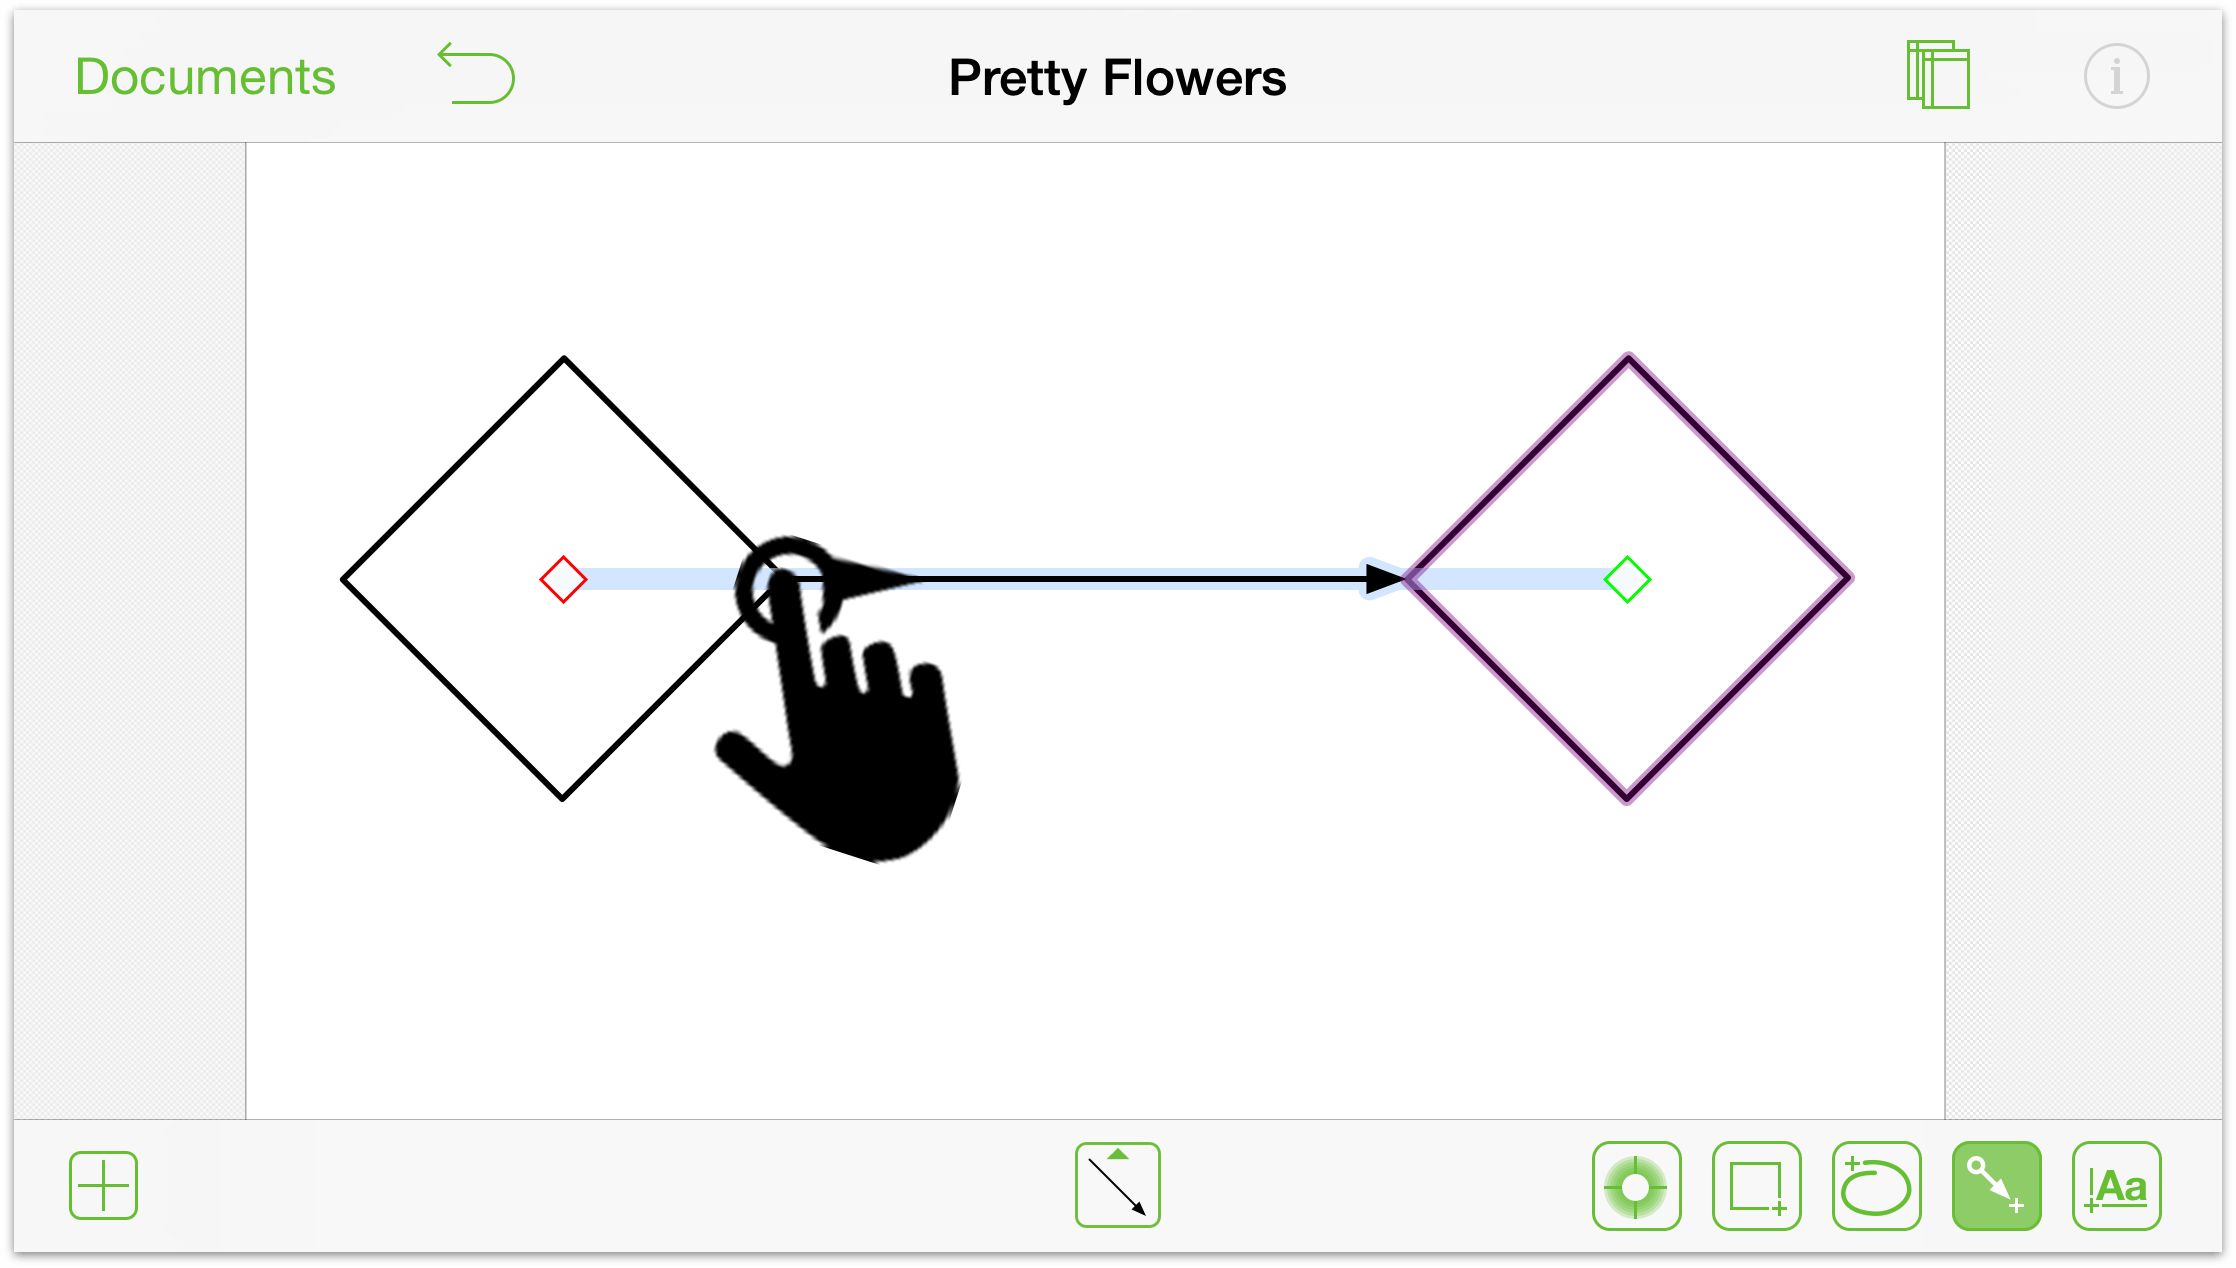 Drawing Lines In Omnigraffle : Omnigraffle for ios user manual the many gestures of